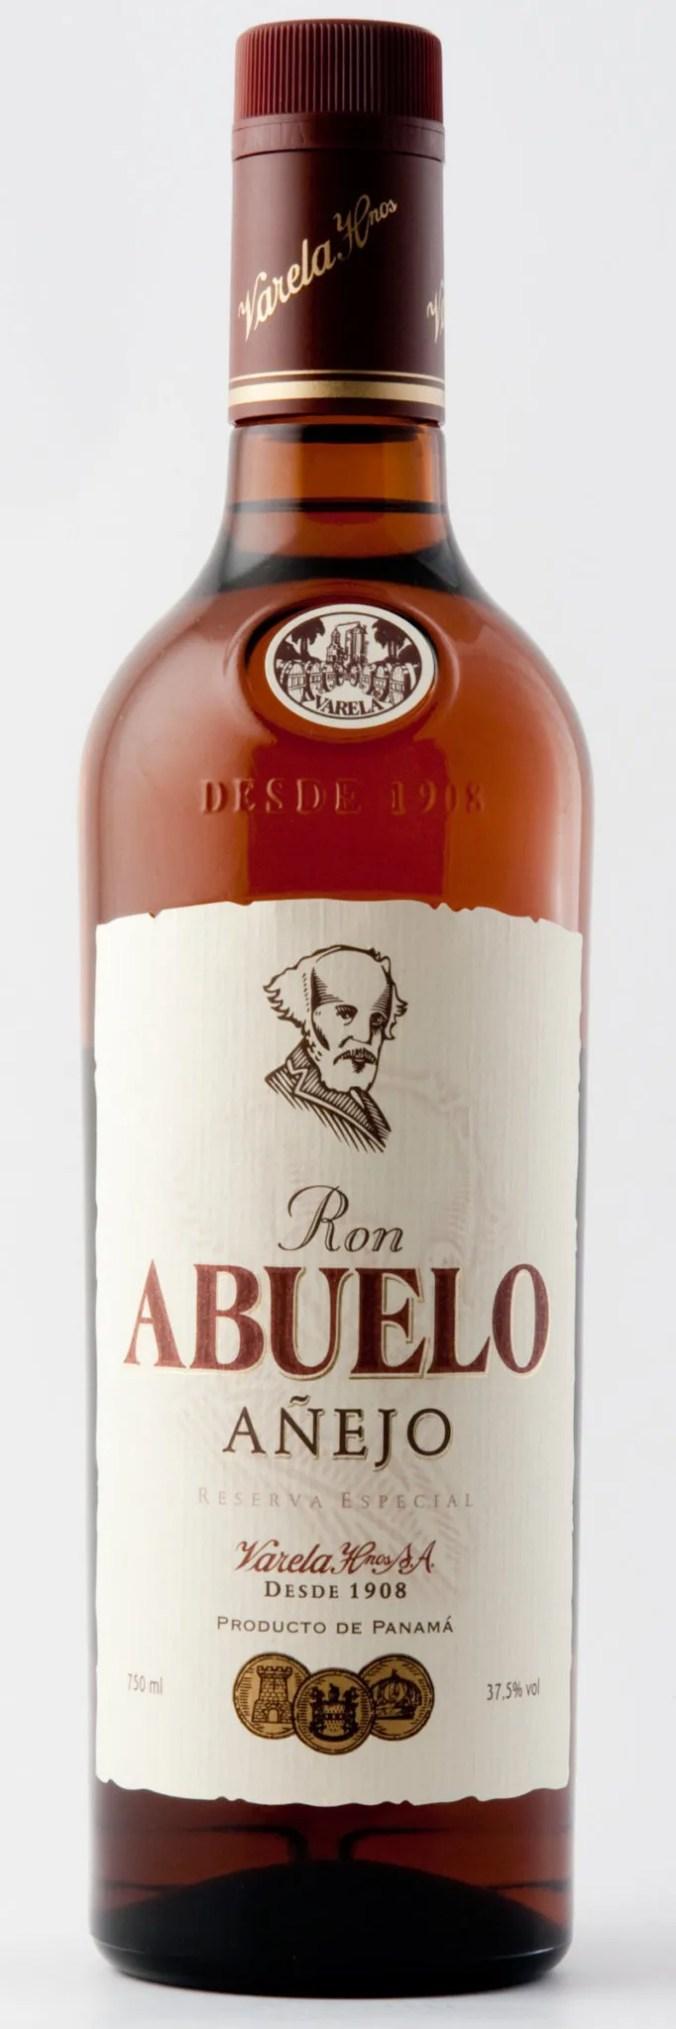 Abuelo Añjeo aged rum from Panama